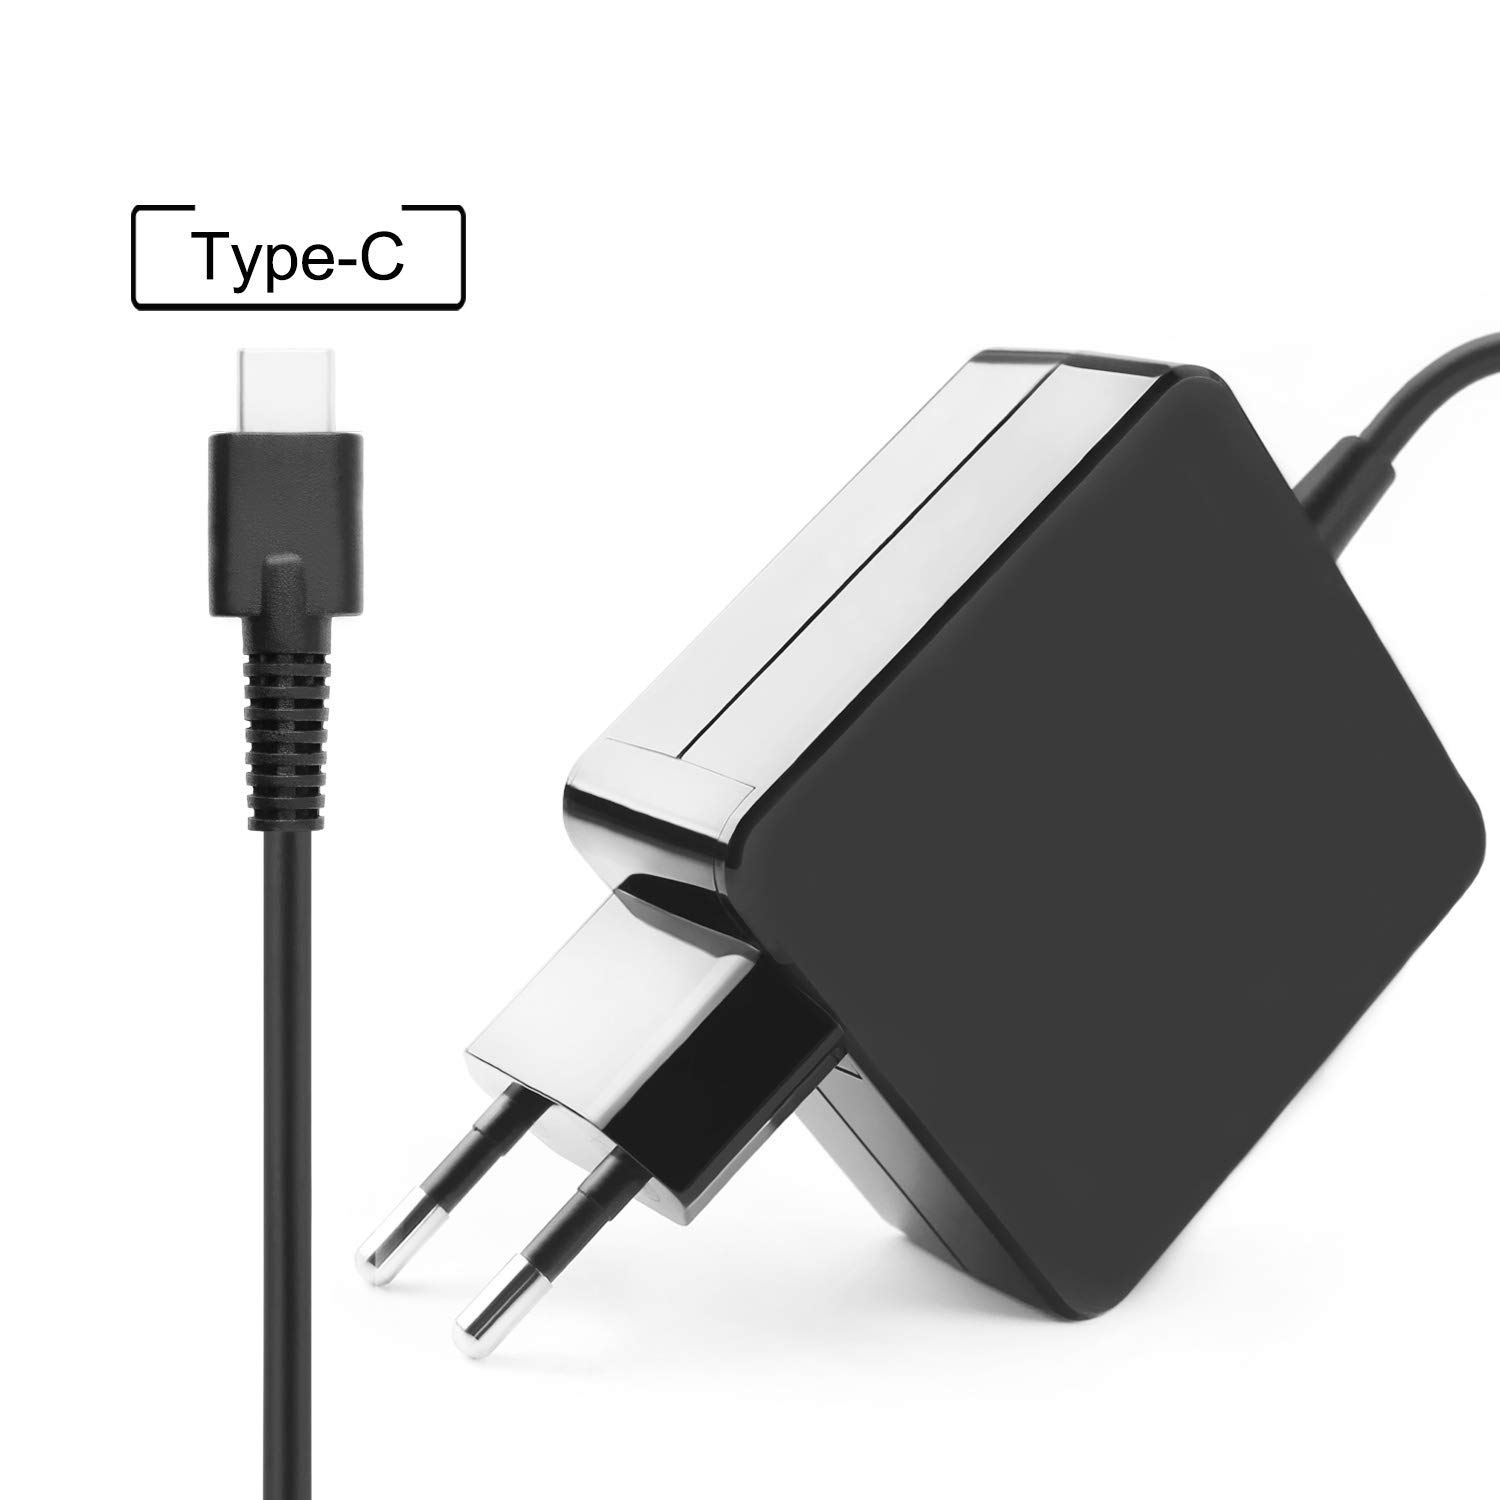 Macbook Pro N Samsung Matebook Original 65w Usb-c Charger Power Adapter Wall Adapter Type C-pd Charger For Macbook Hua-wei Matebook